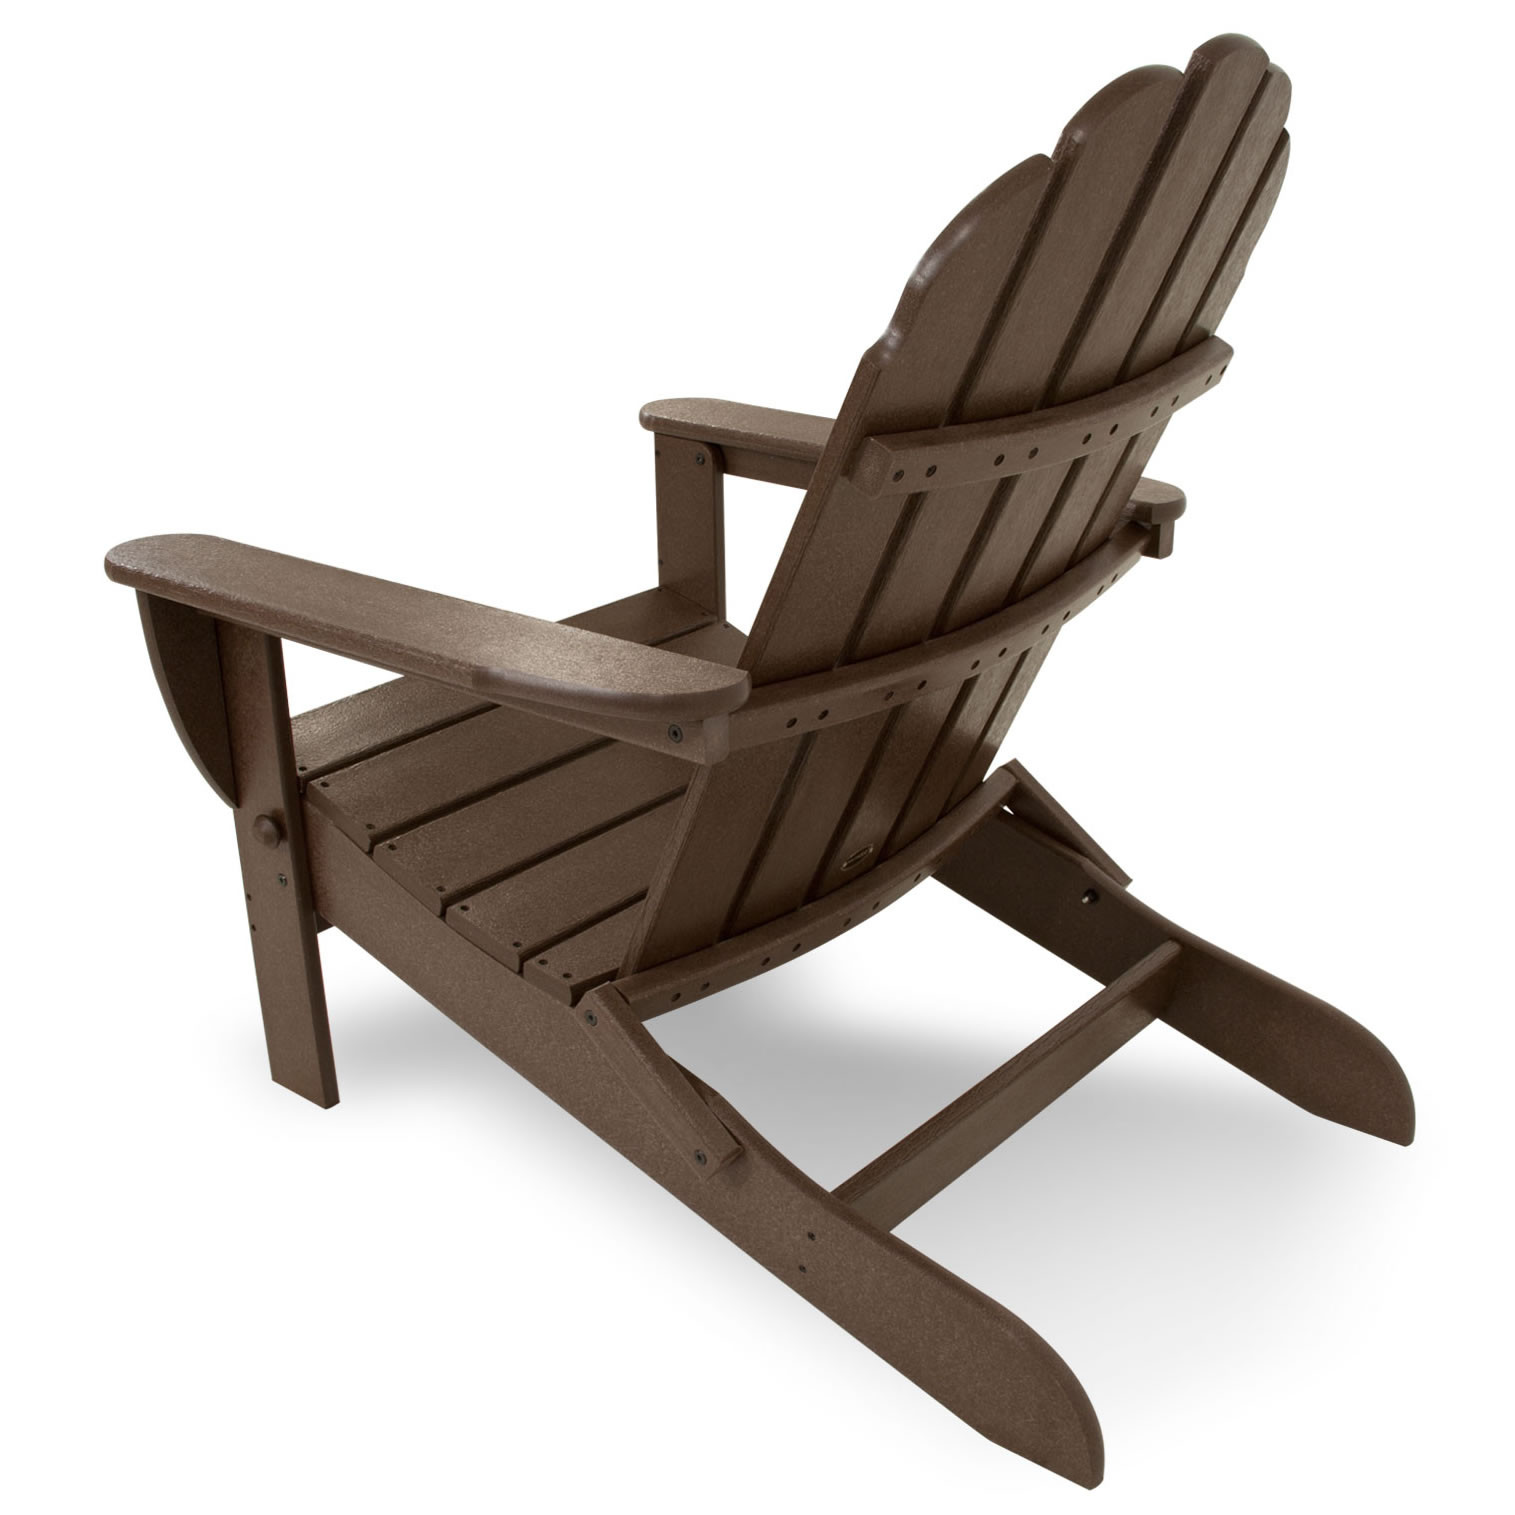 polywood classic adirondack chair stool with footrest oversized curveback